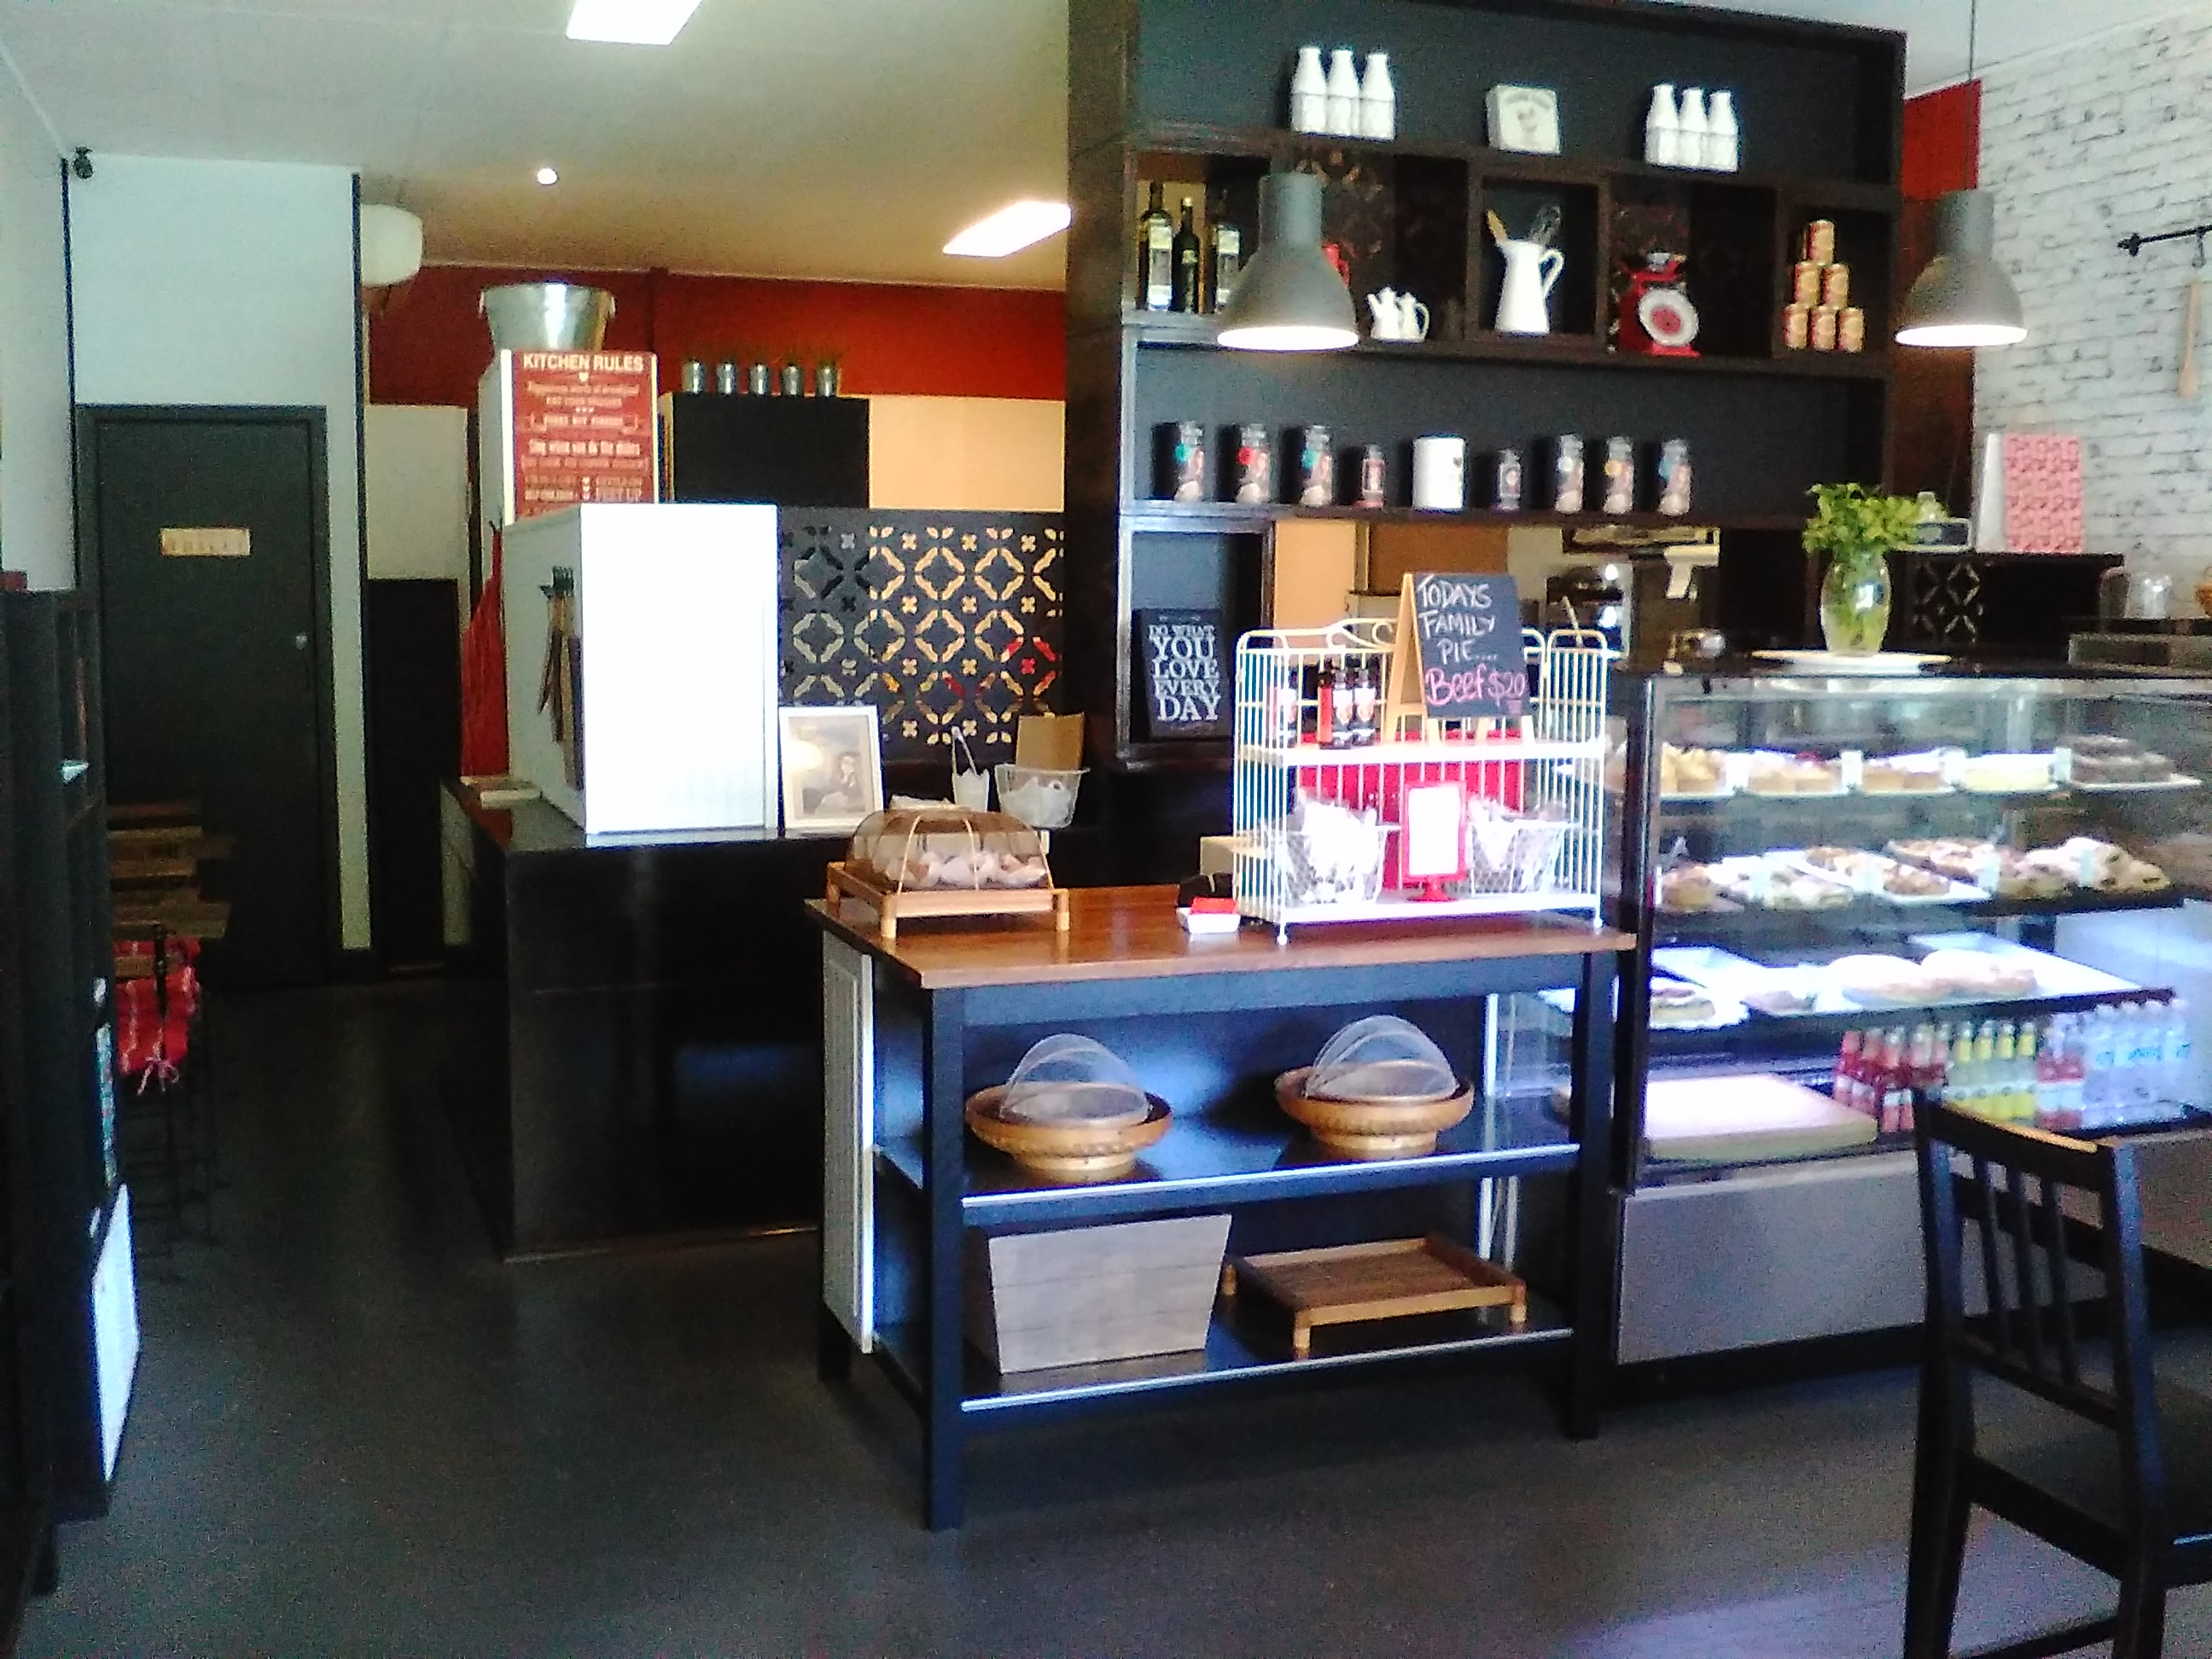 5 Day Cafe and Takeaway Business For Sale Macedon Ranges